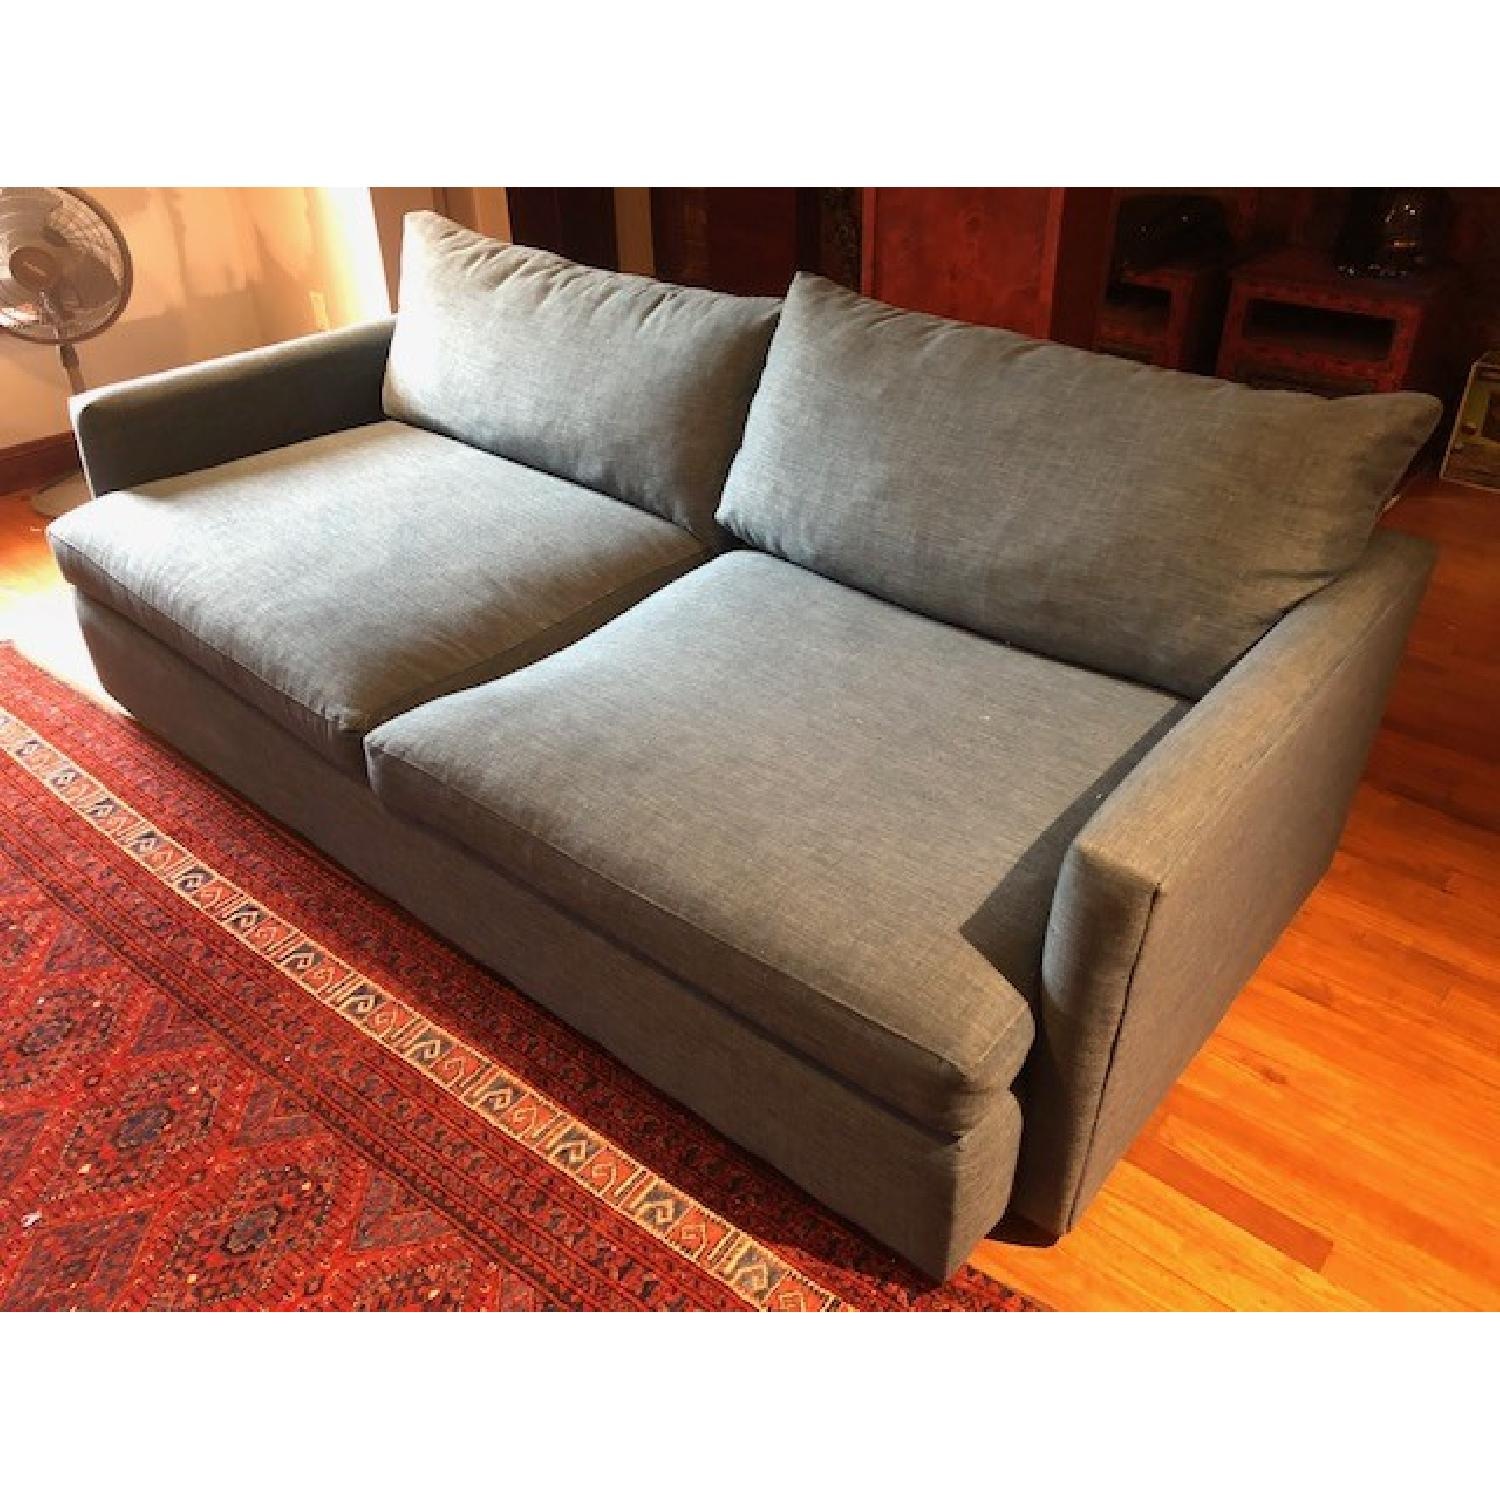 Crate & Barrel Lounge II Apartment Sofa & Ottoman-6